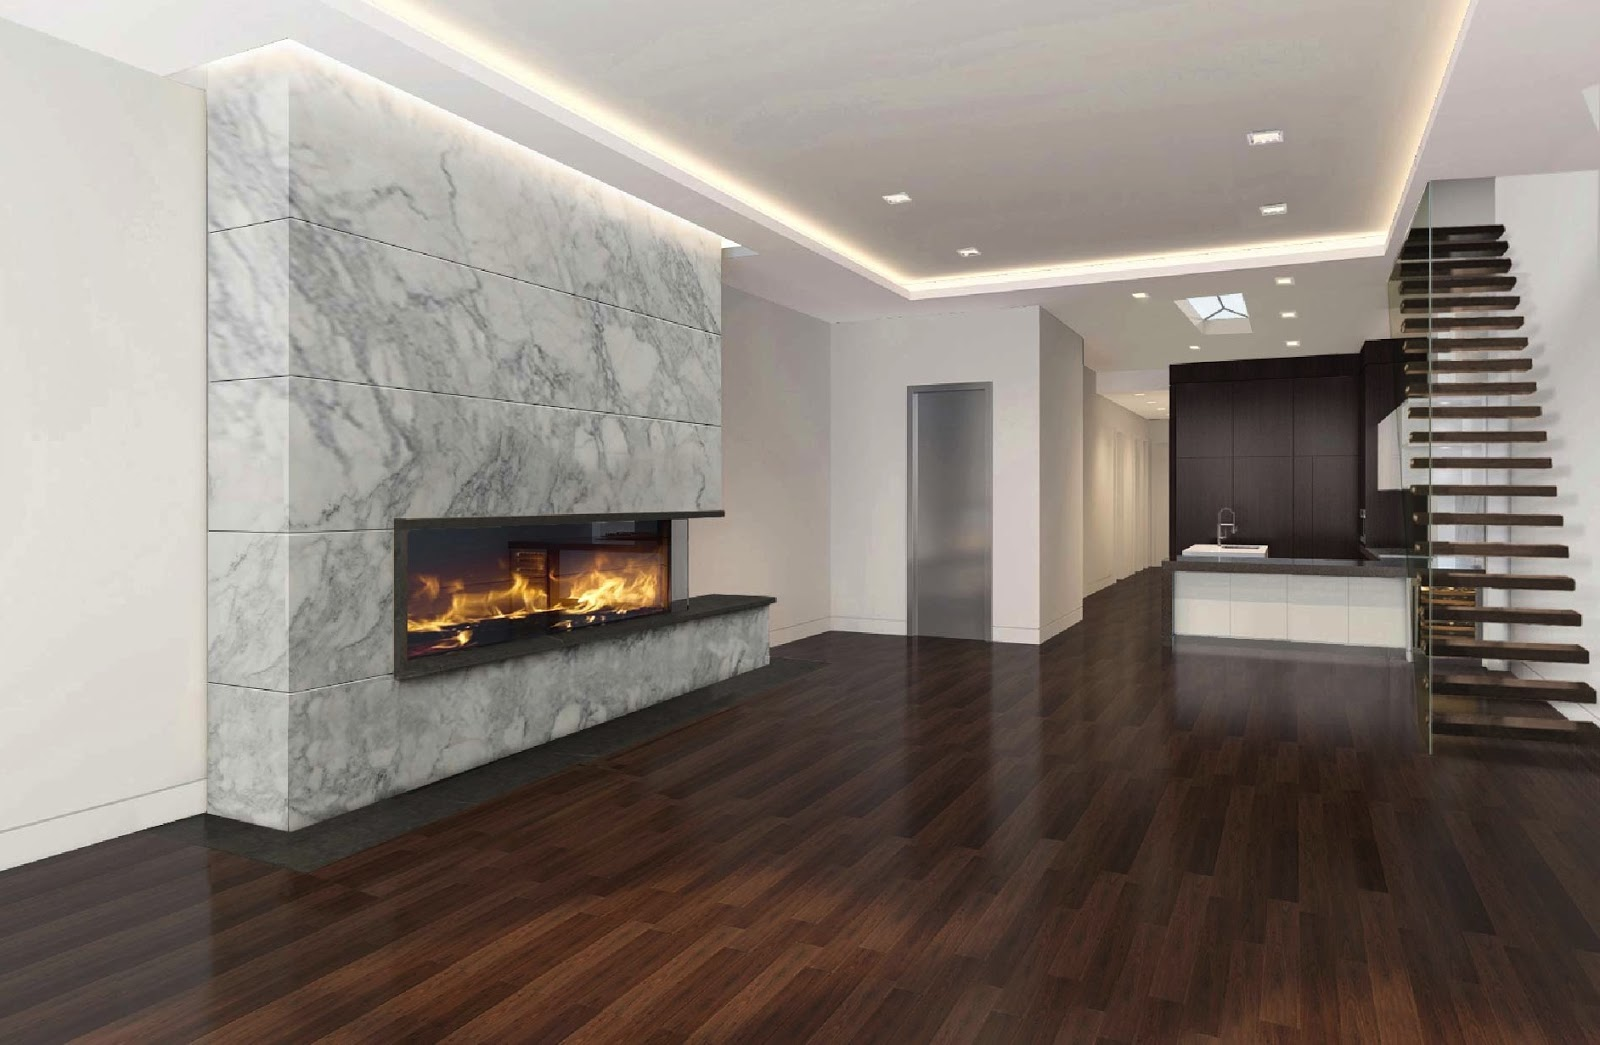 acucraft fireplaces new custom gas fireplace brochure now